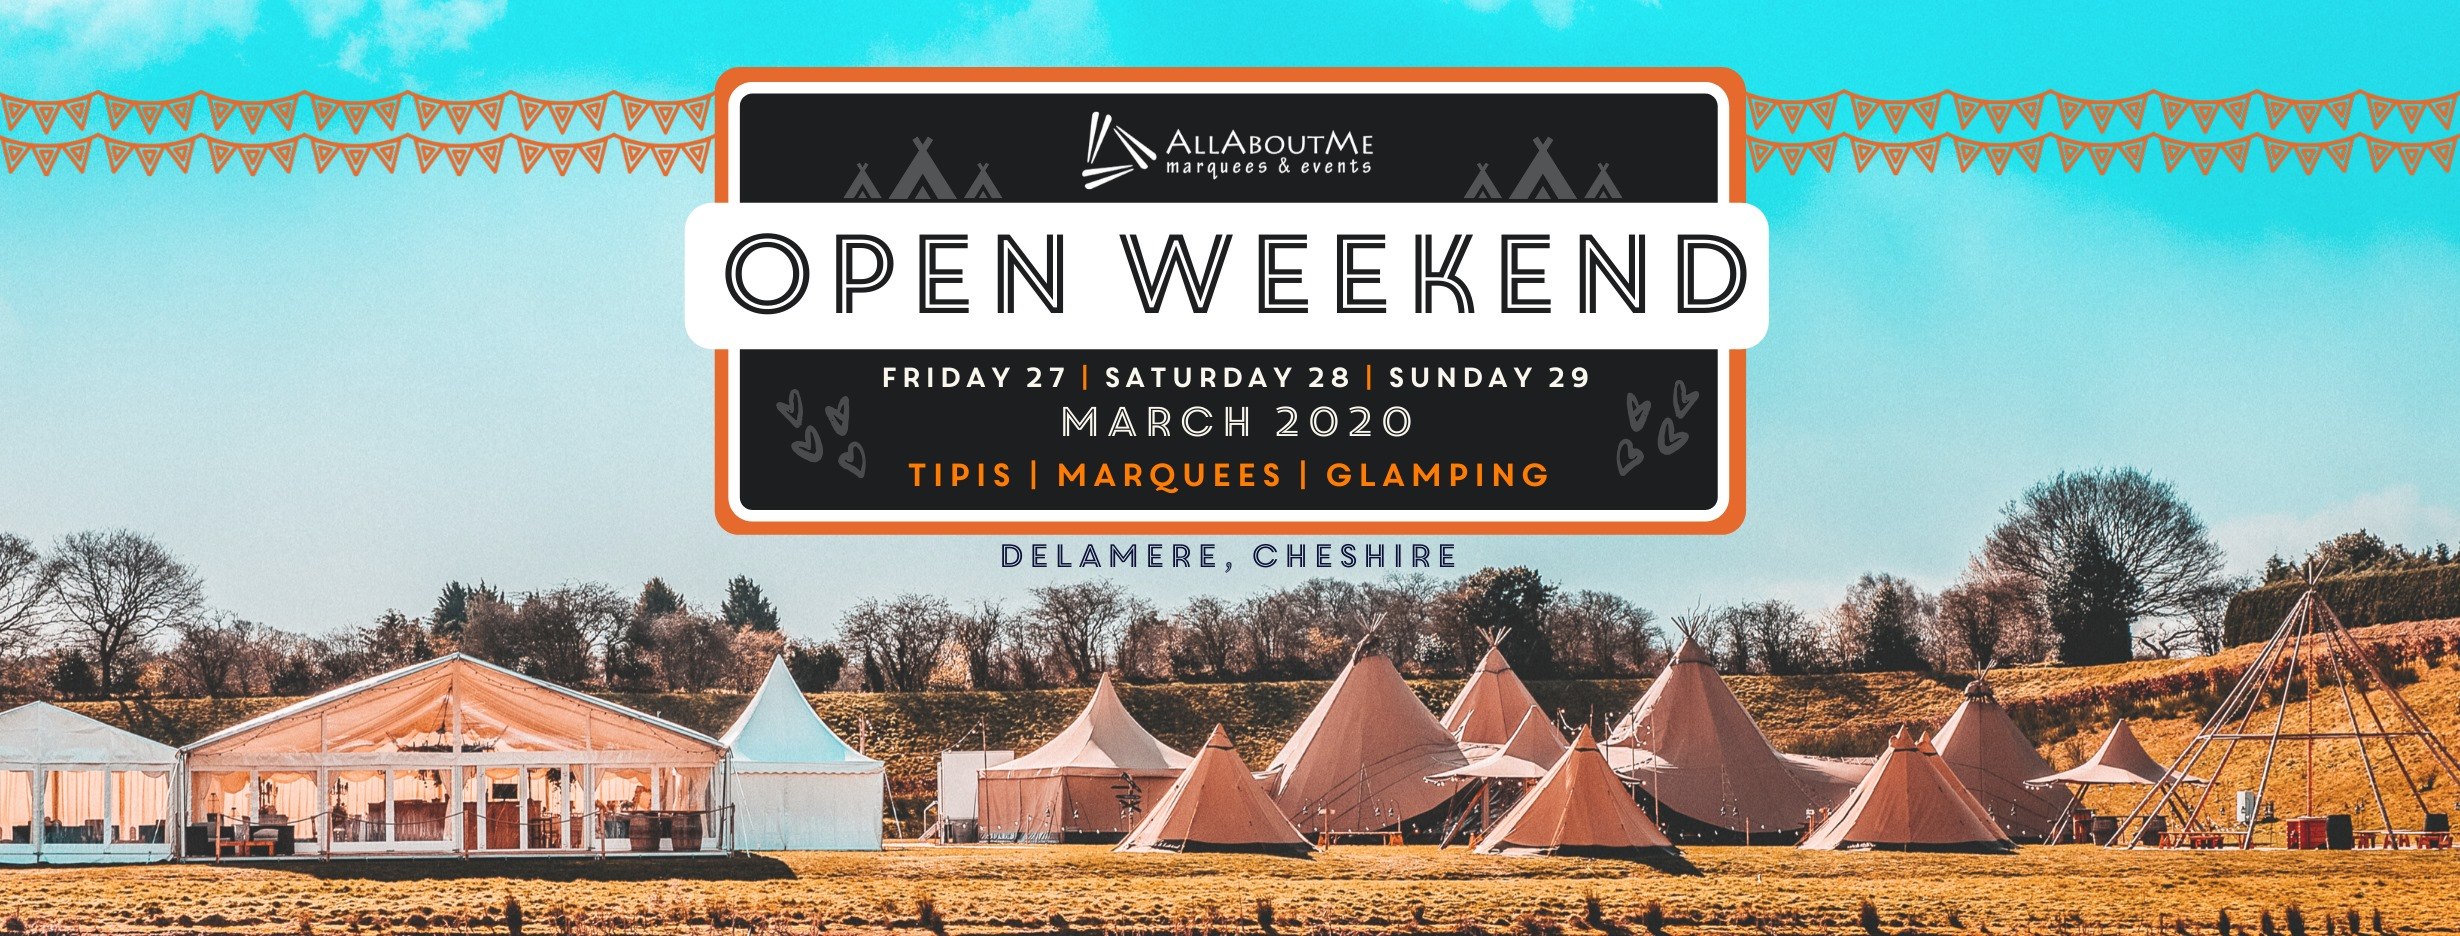 All about me tipi and marquee open weekend 2020